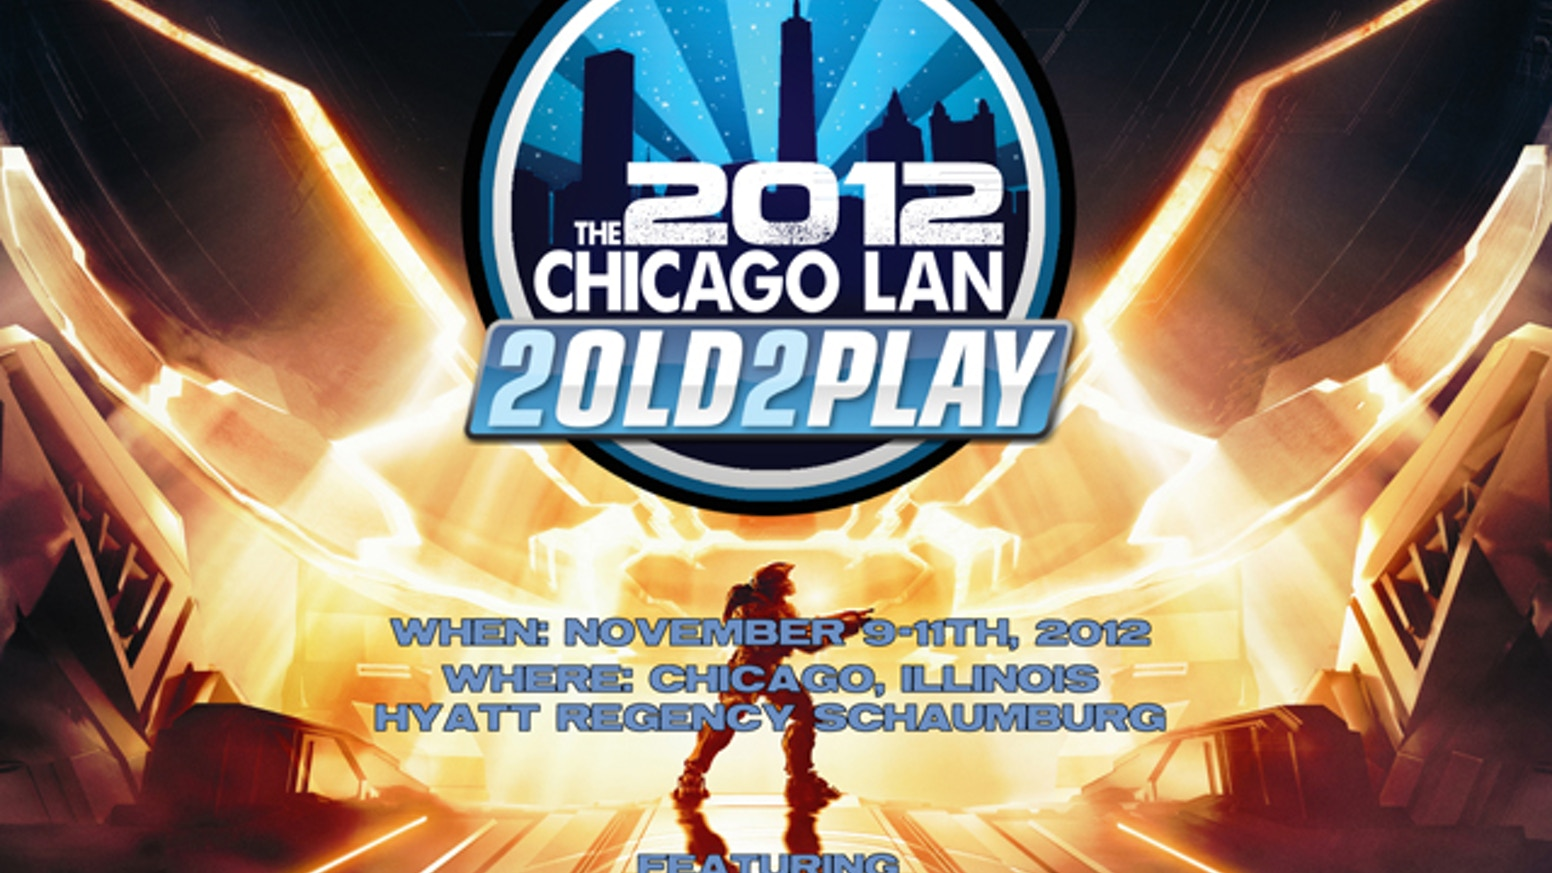 The 2old2play 2012 Chicago Lan Halo 4 Release Party by Joel Albert